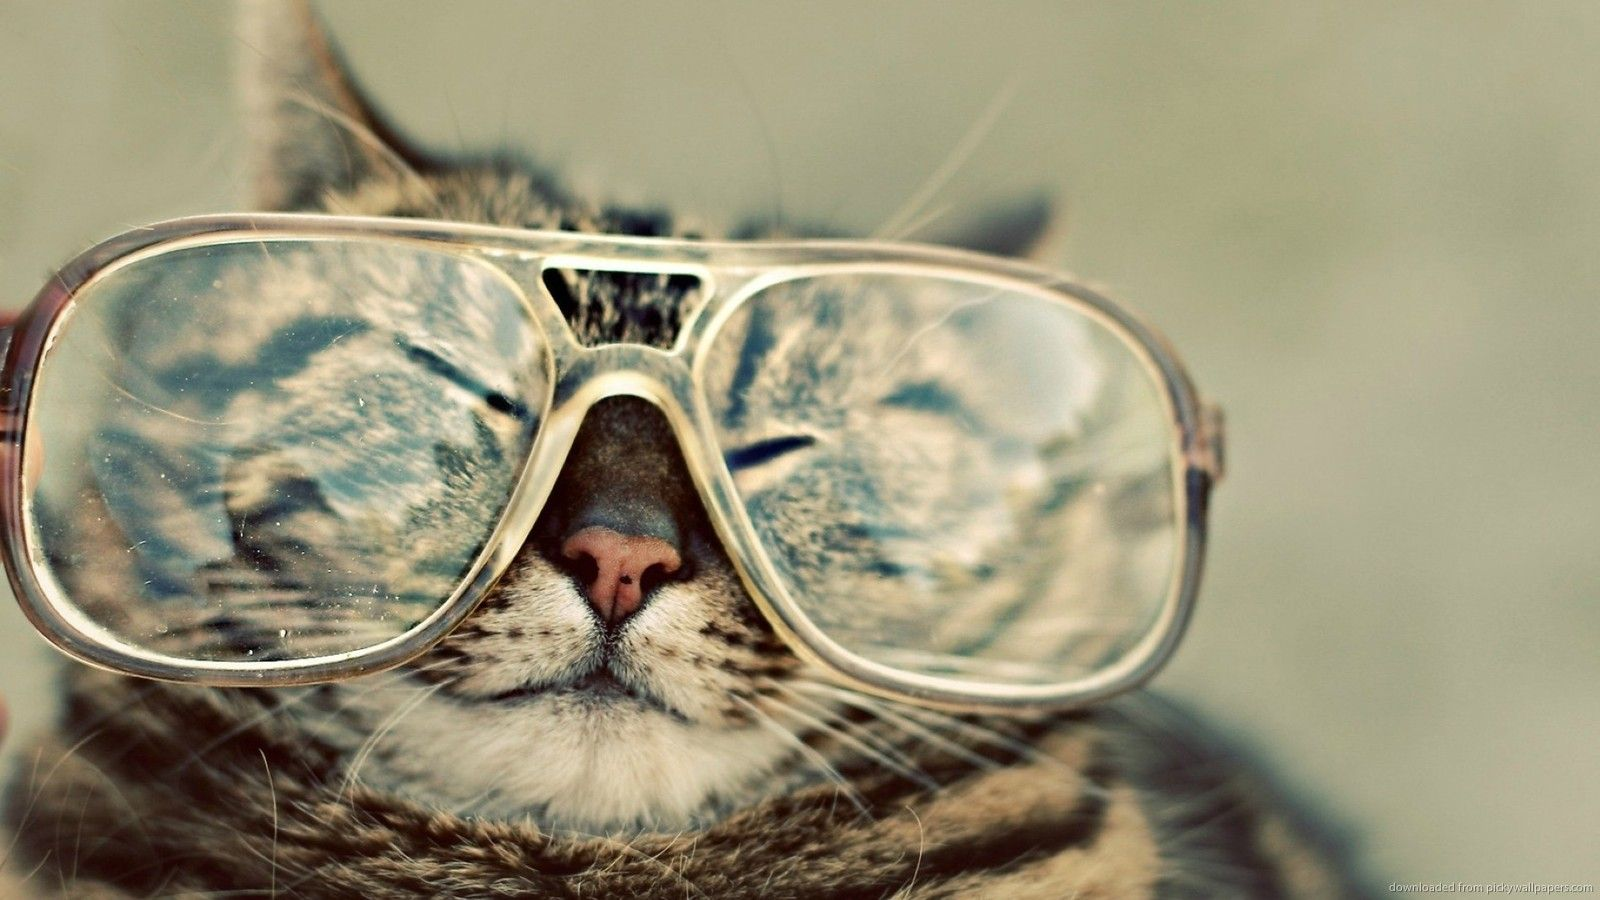 cat_with_glasses_image_09.jpg (1600×900)